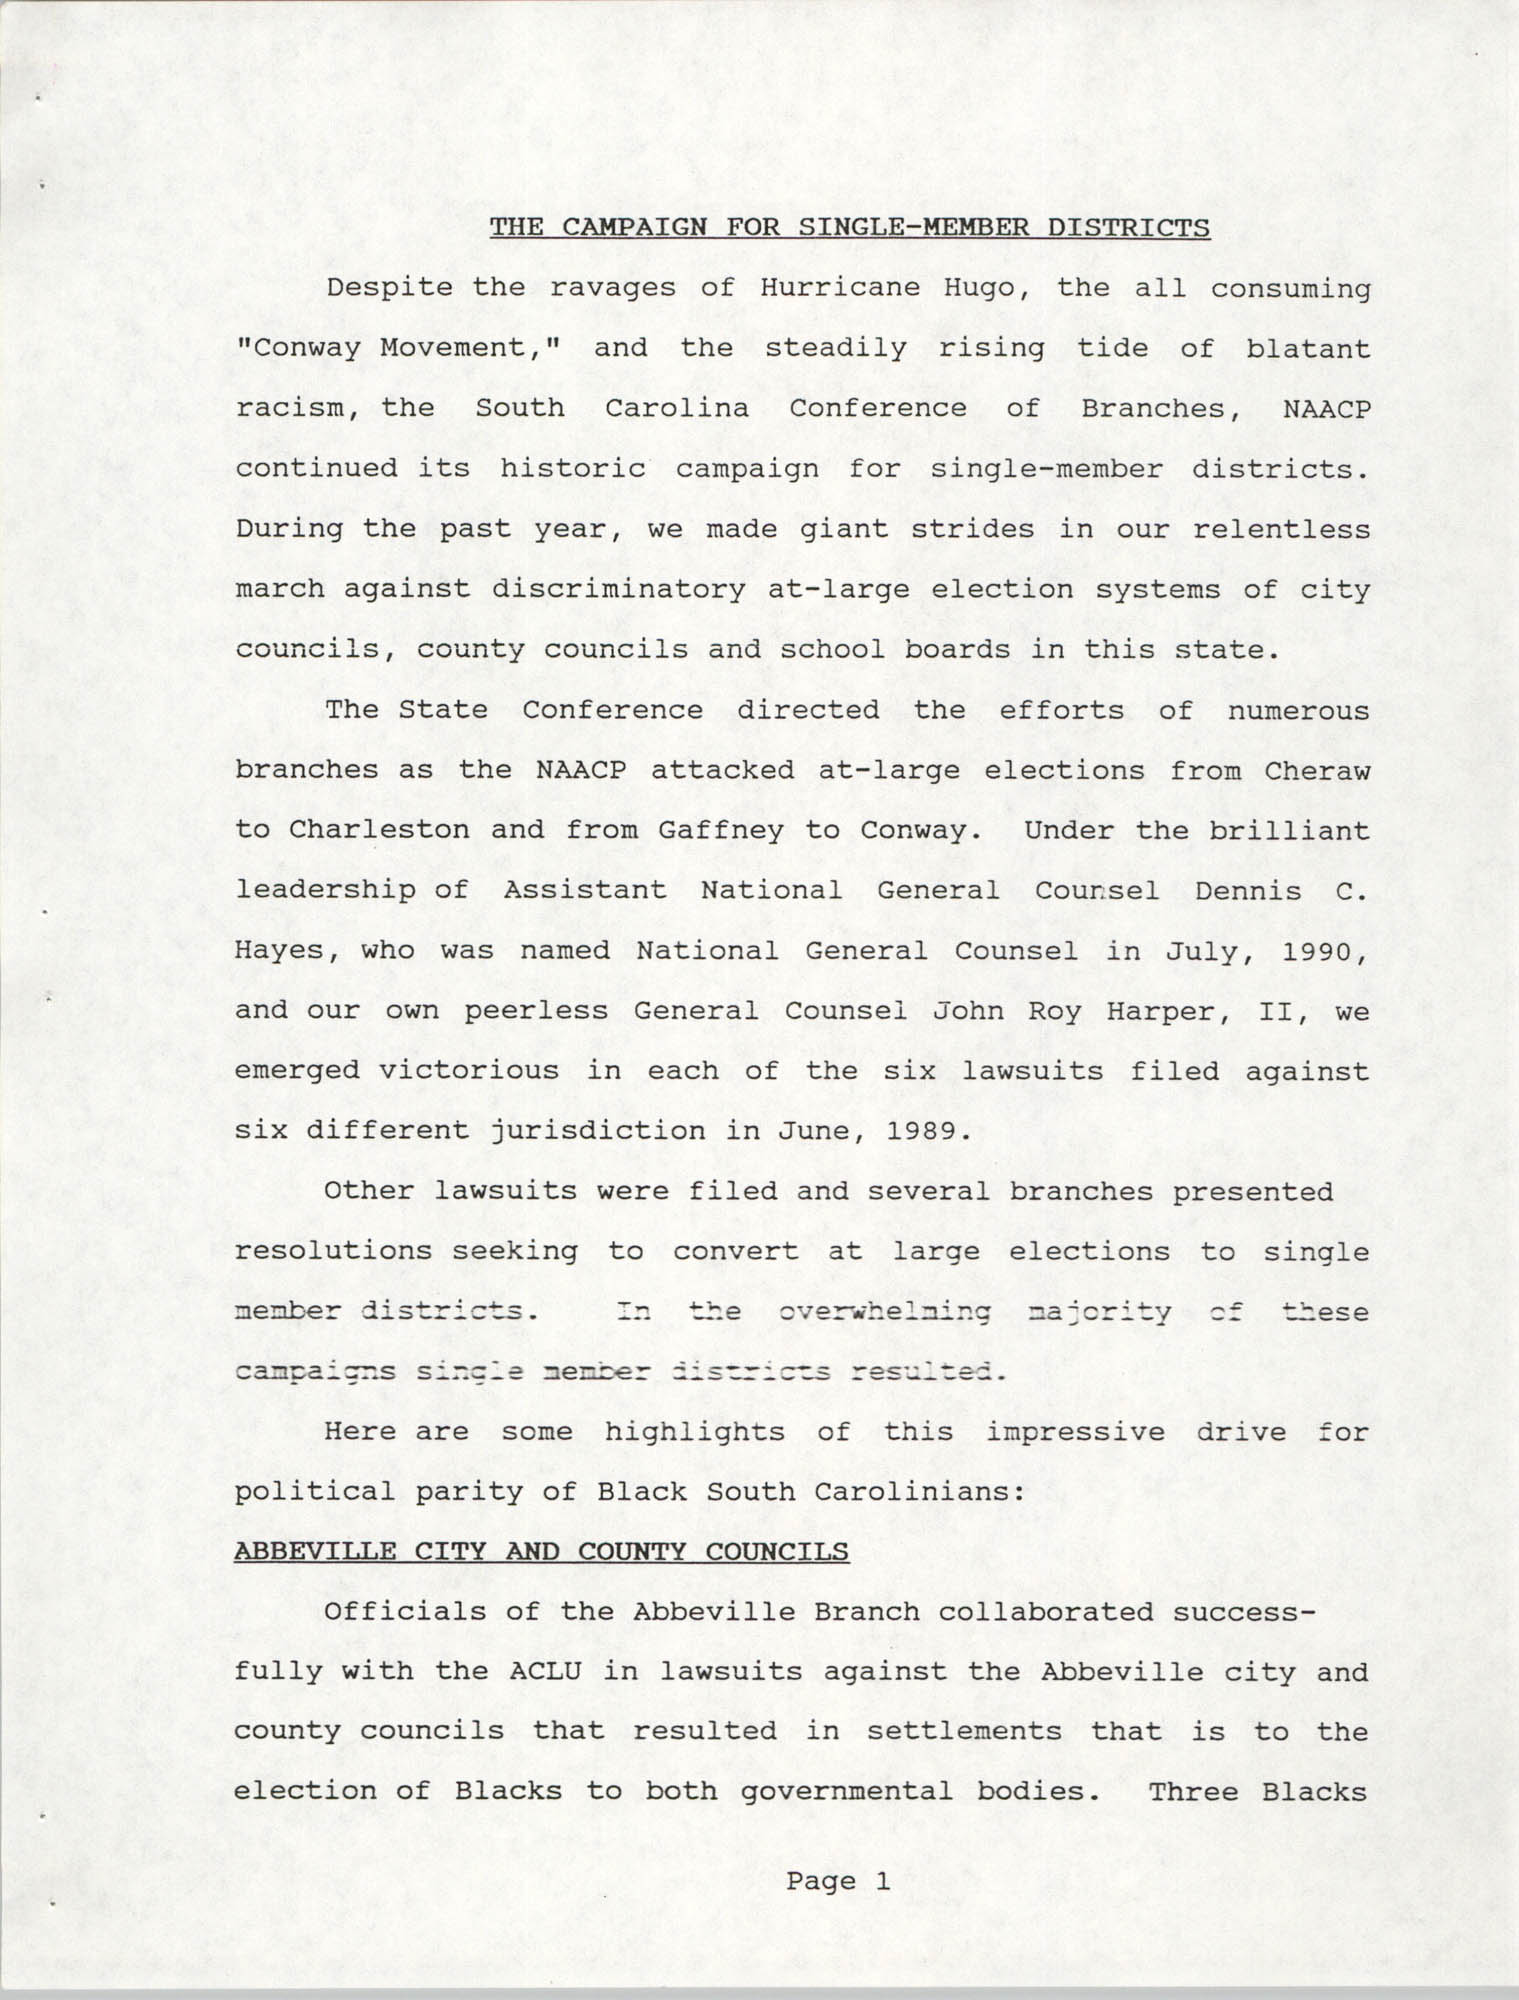 South Carolina Conference of Branches of the NAACP, 1990 Annual Report, Part One, Page 1